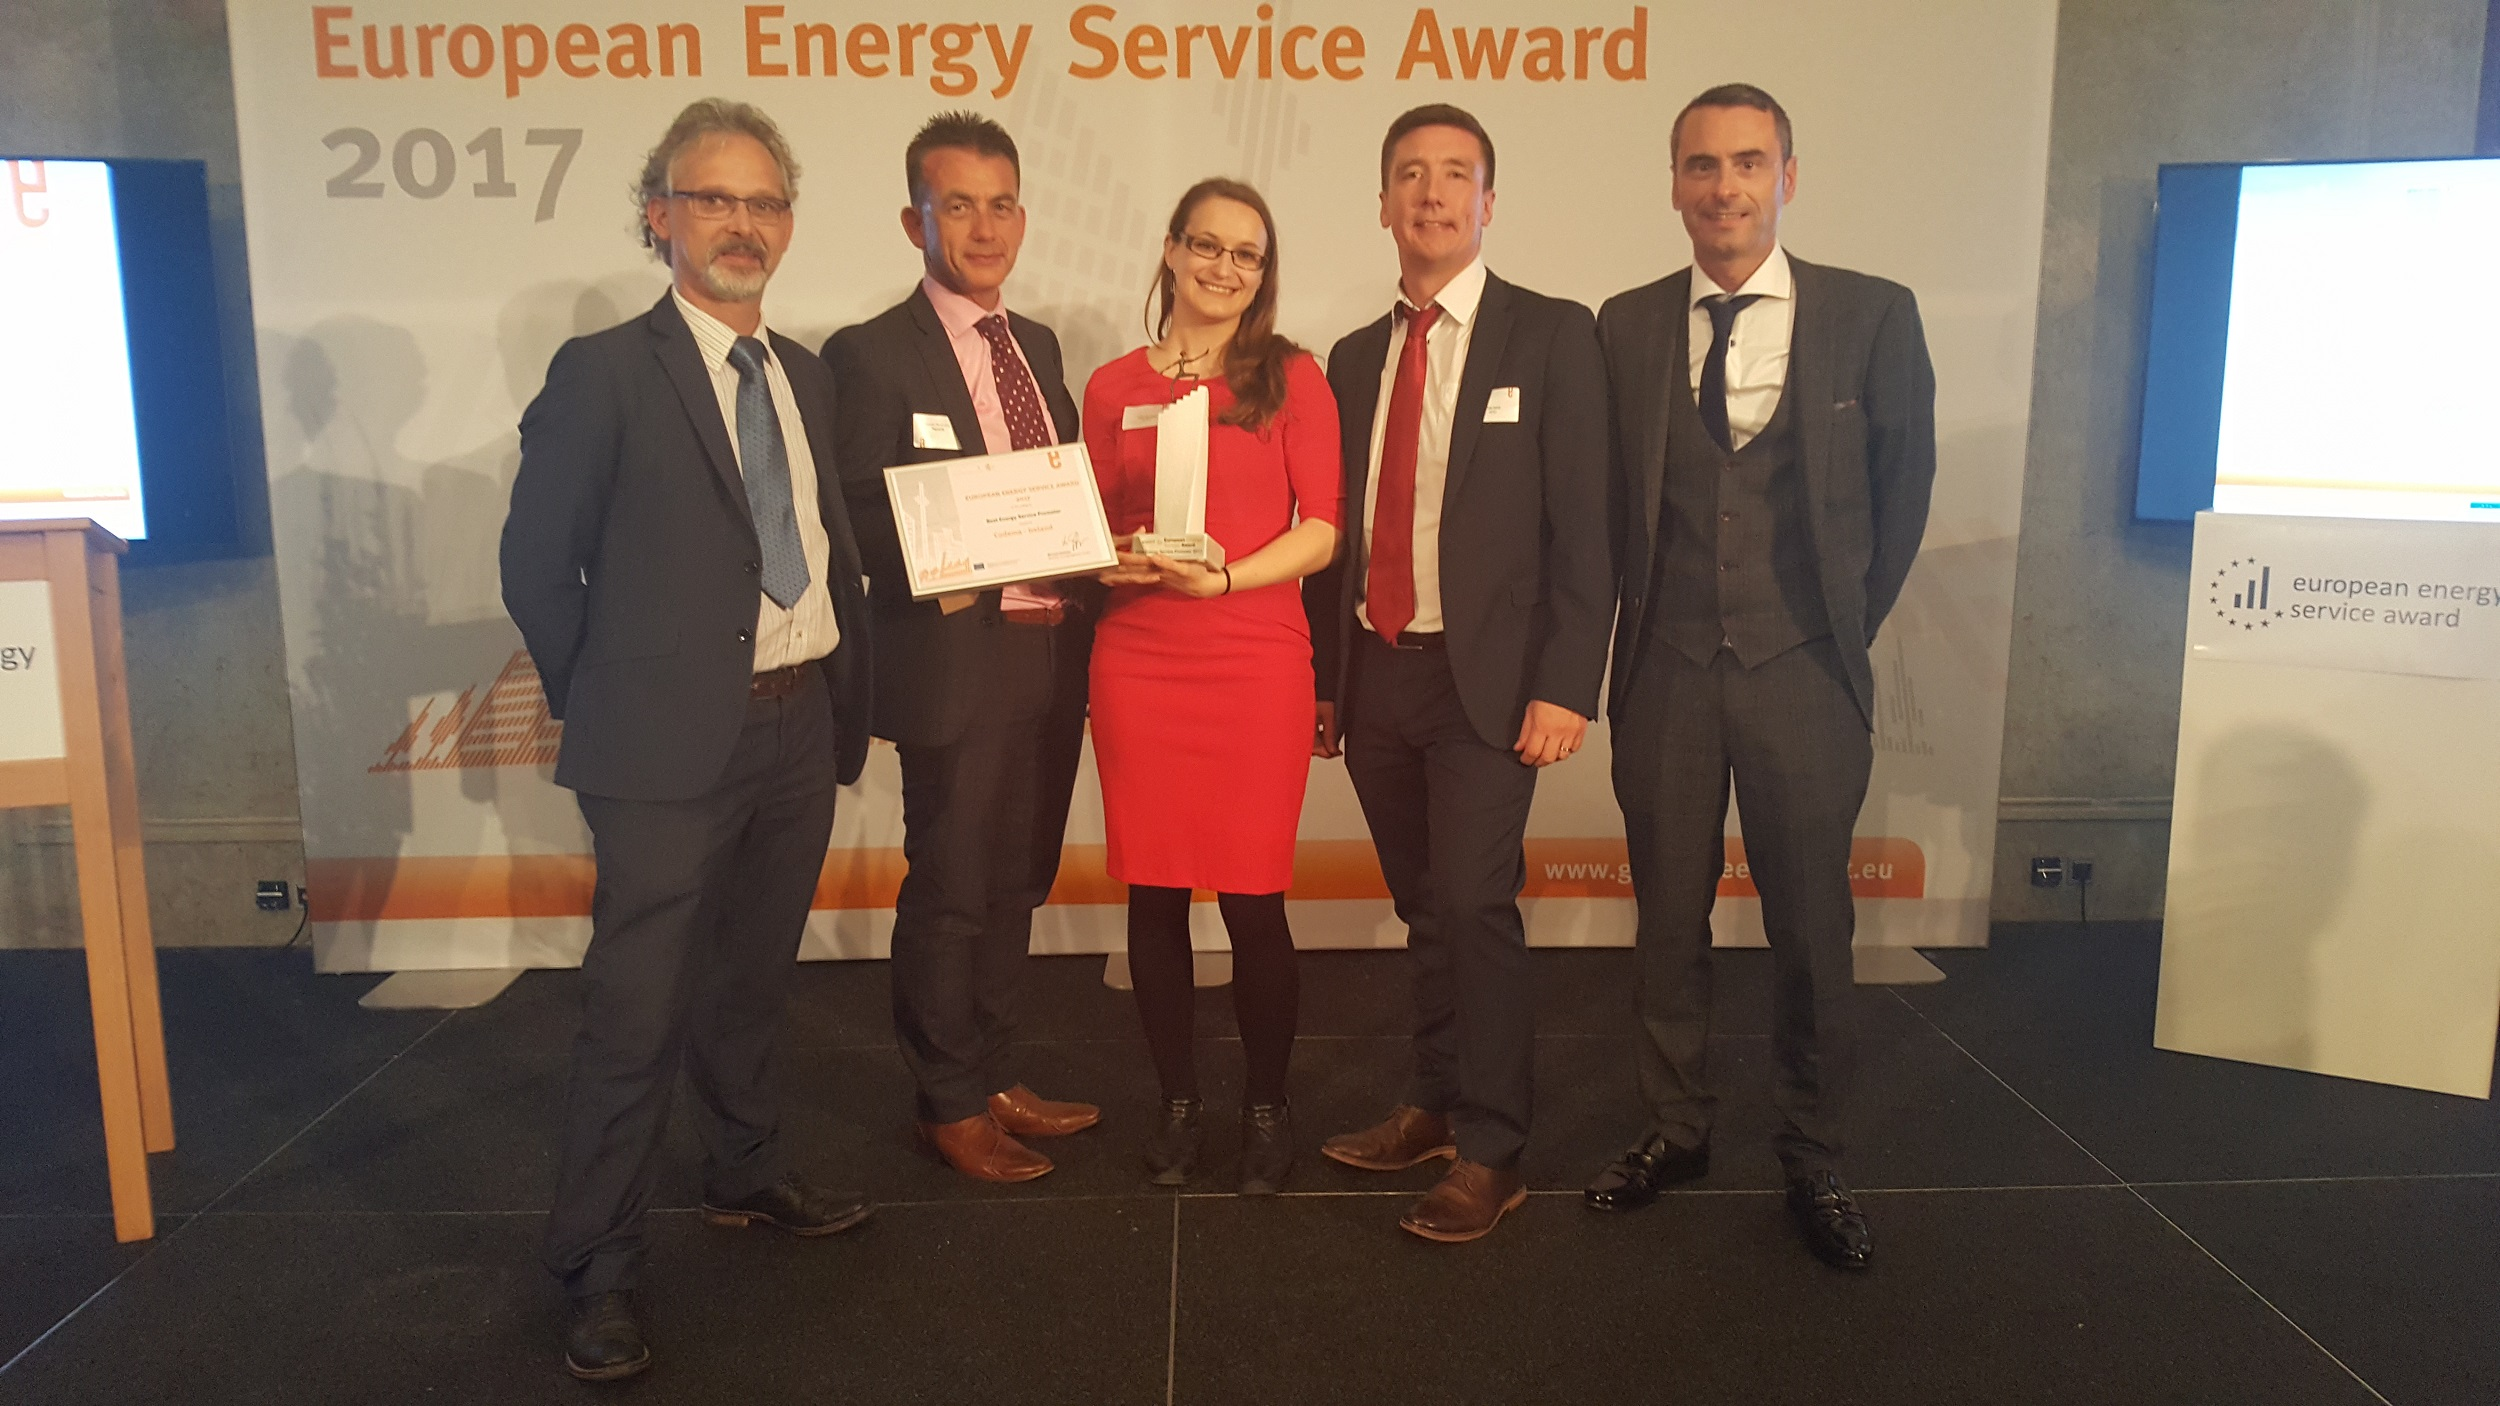 Winner at the European Energy Awards in Berlin 2017 - Awarded for our success with DCC in EPC Leisure Centre Project..